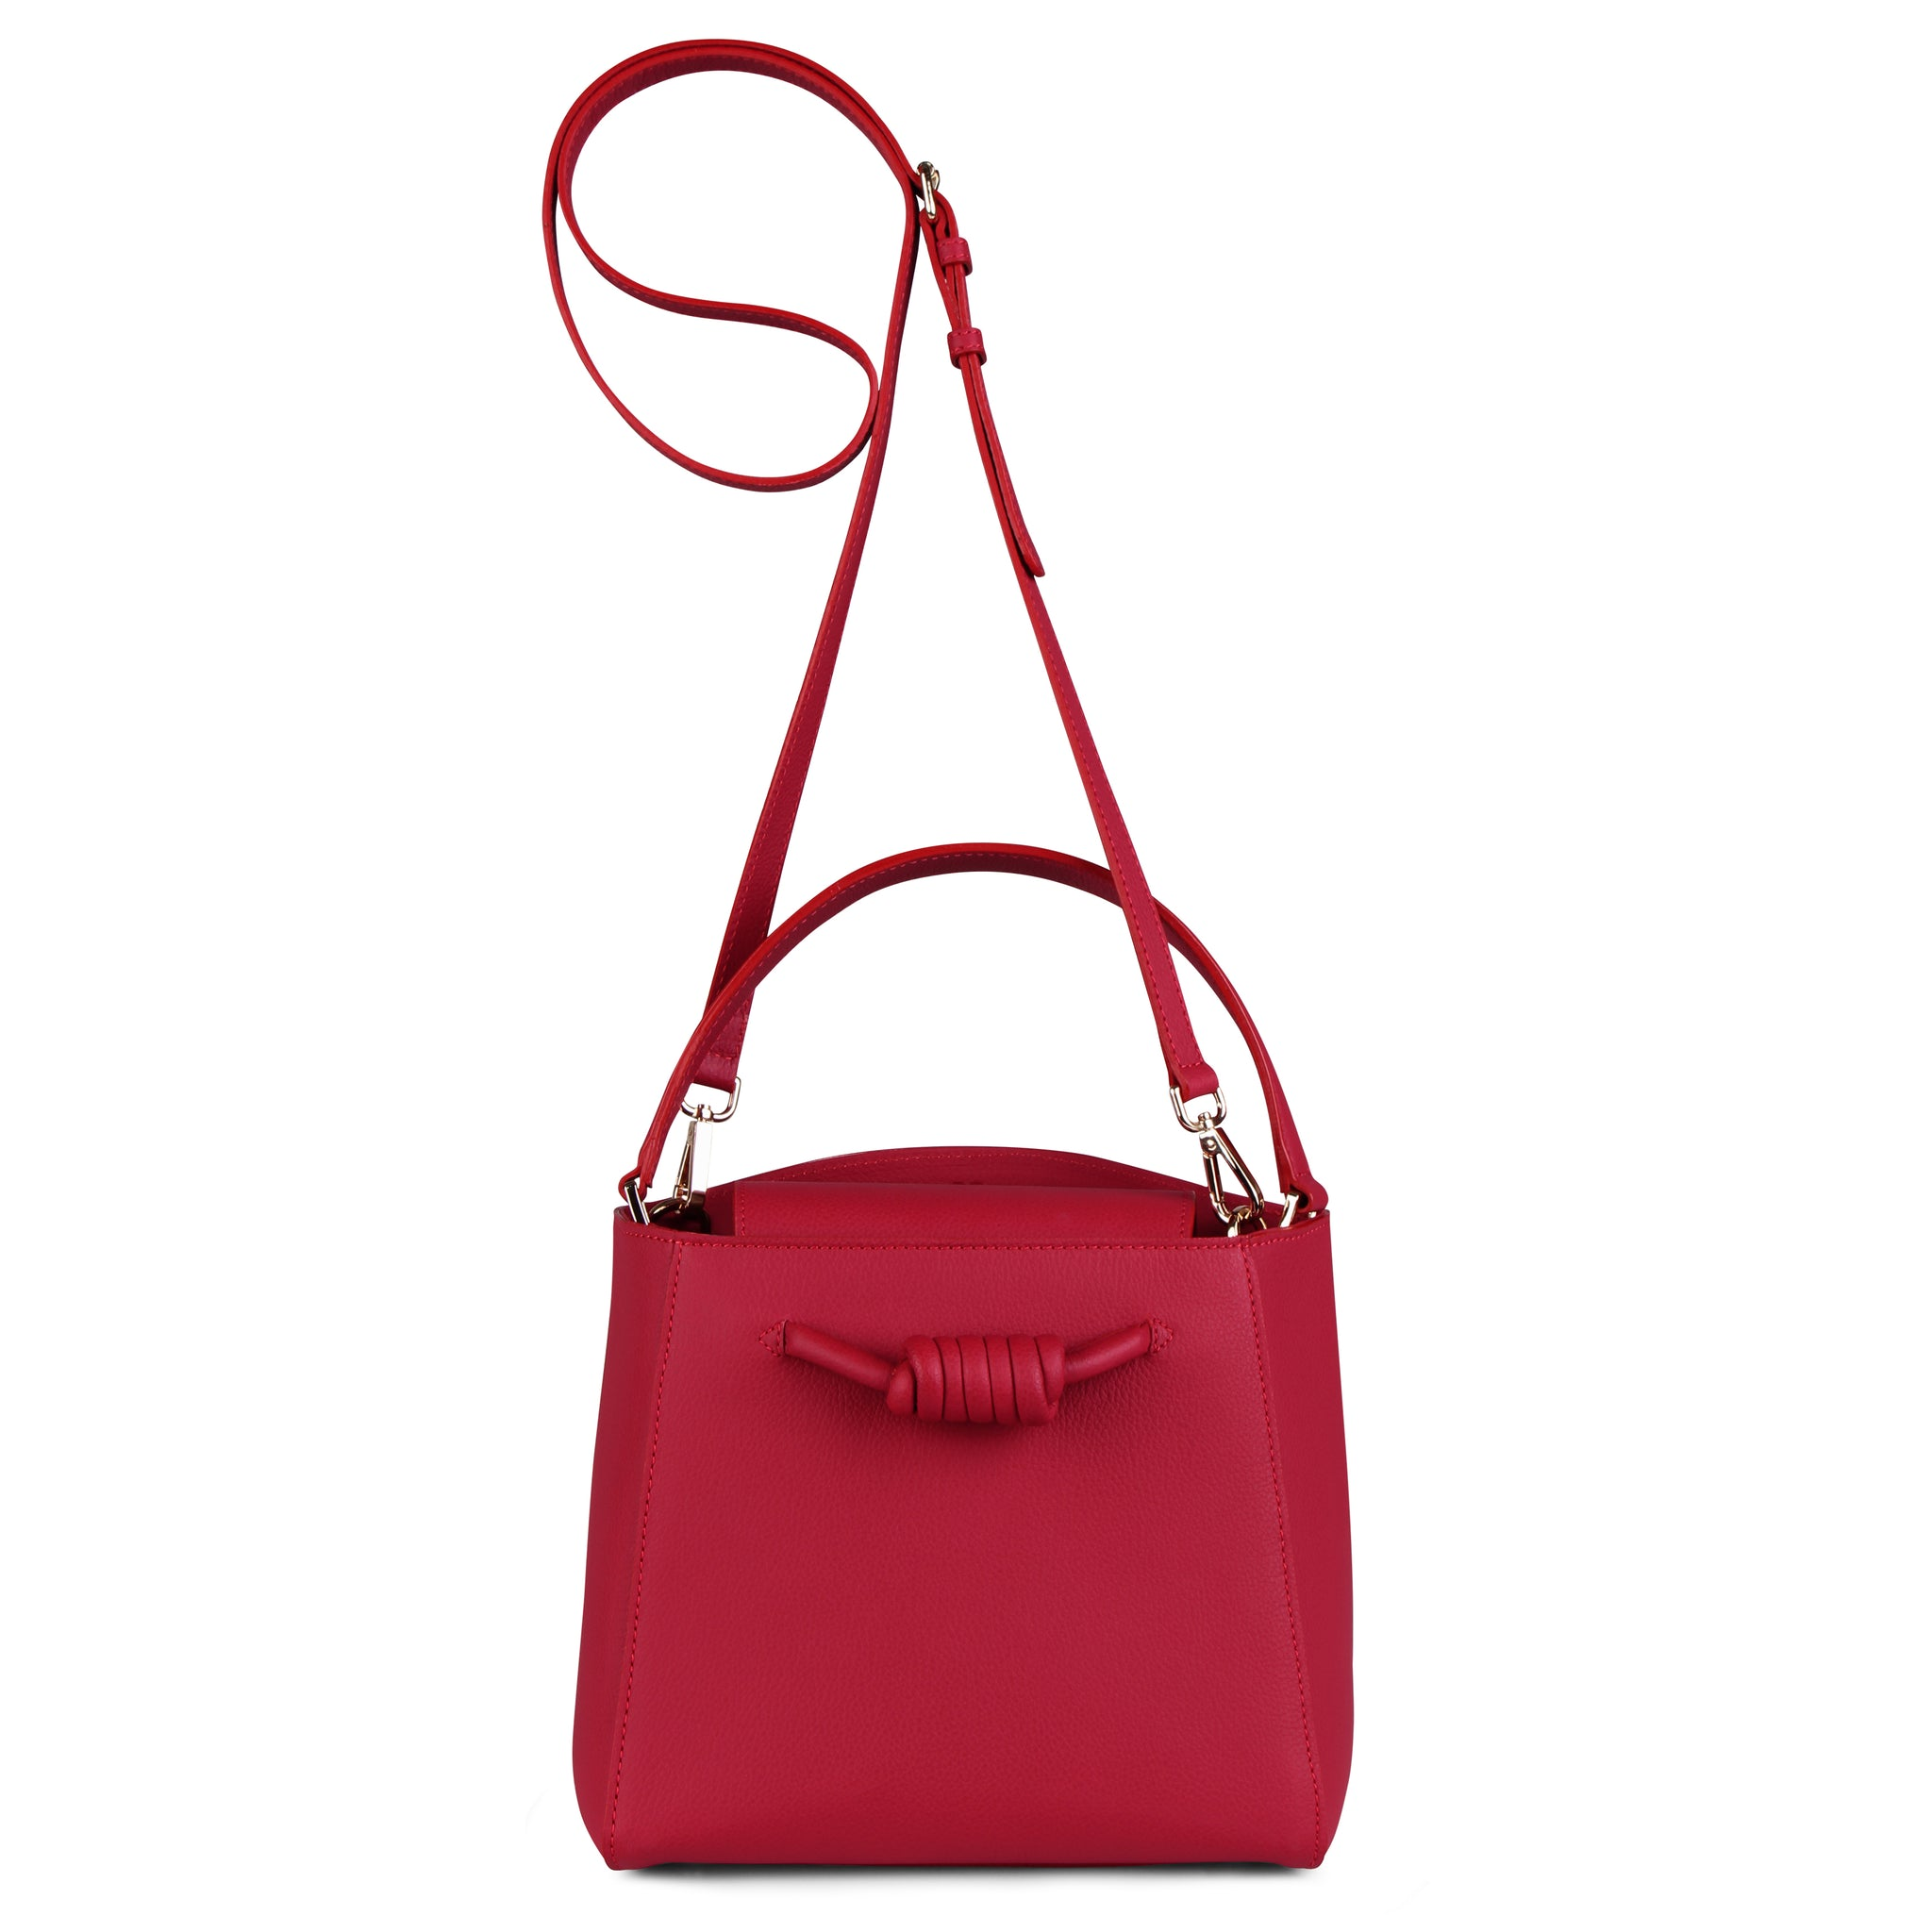 A medium size red convertible leather top handle tote bag with a knot detail in front that could be used as a handheld mini tote bag, front image.